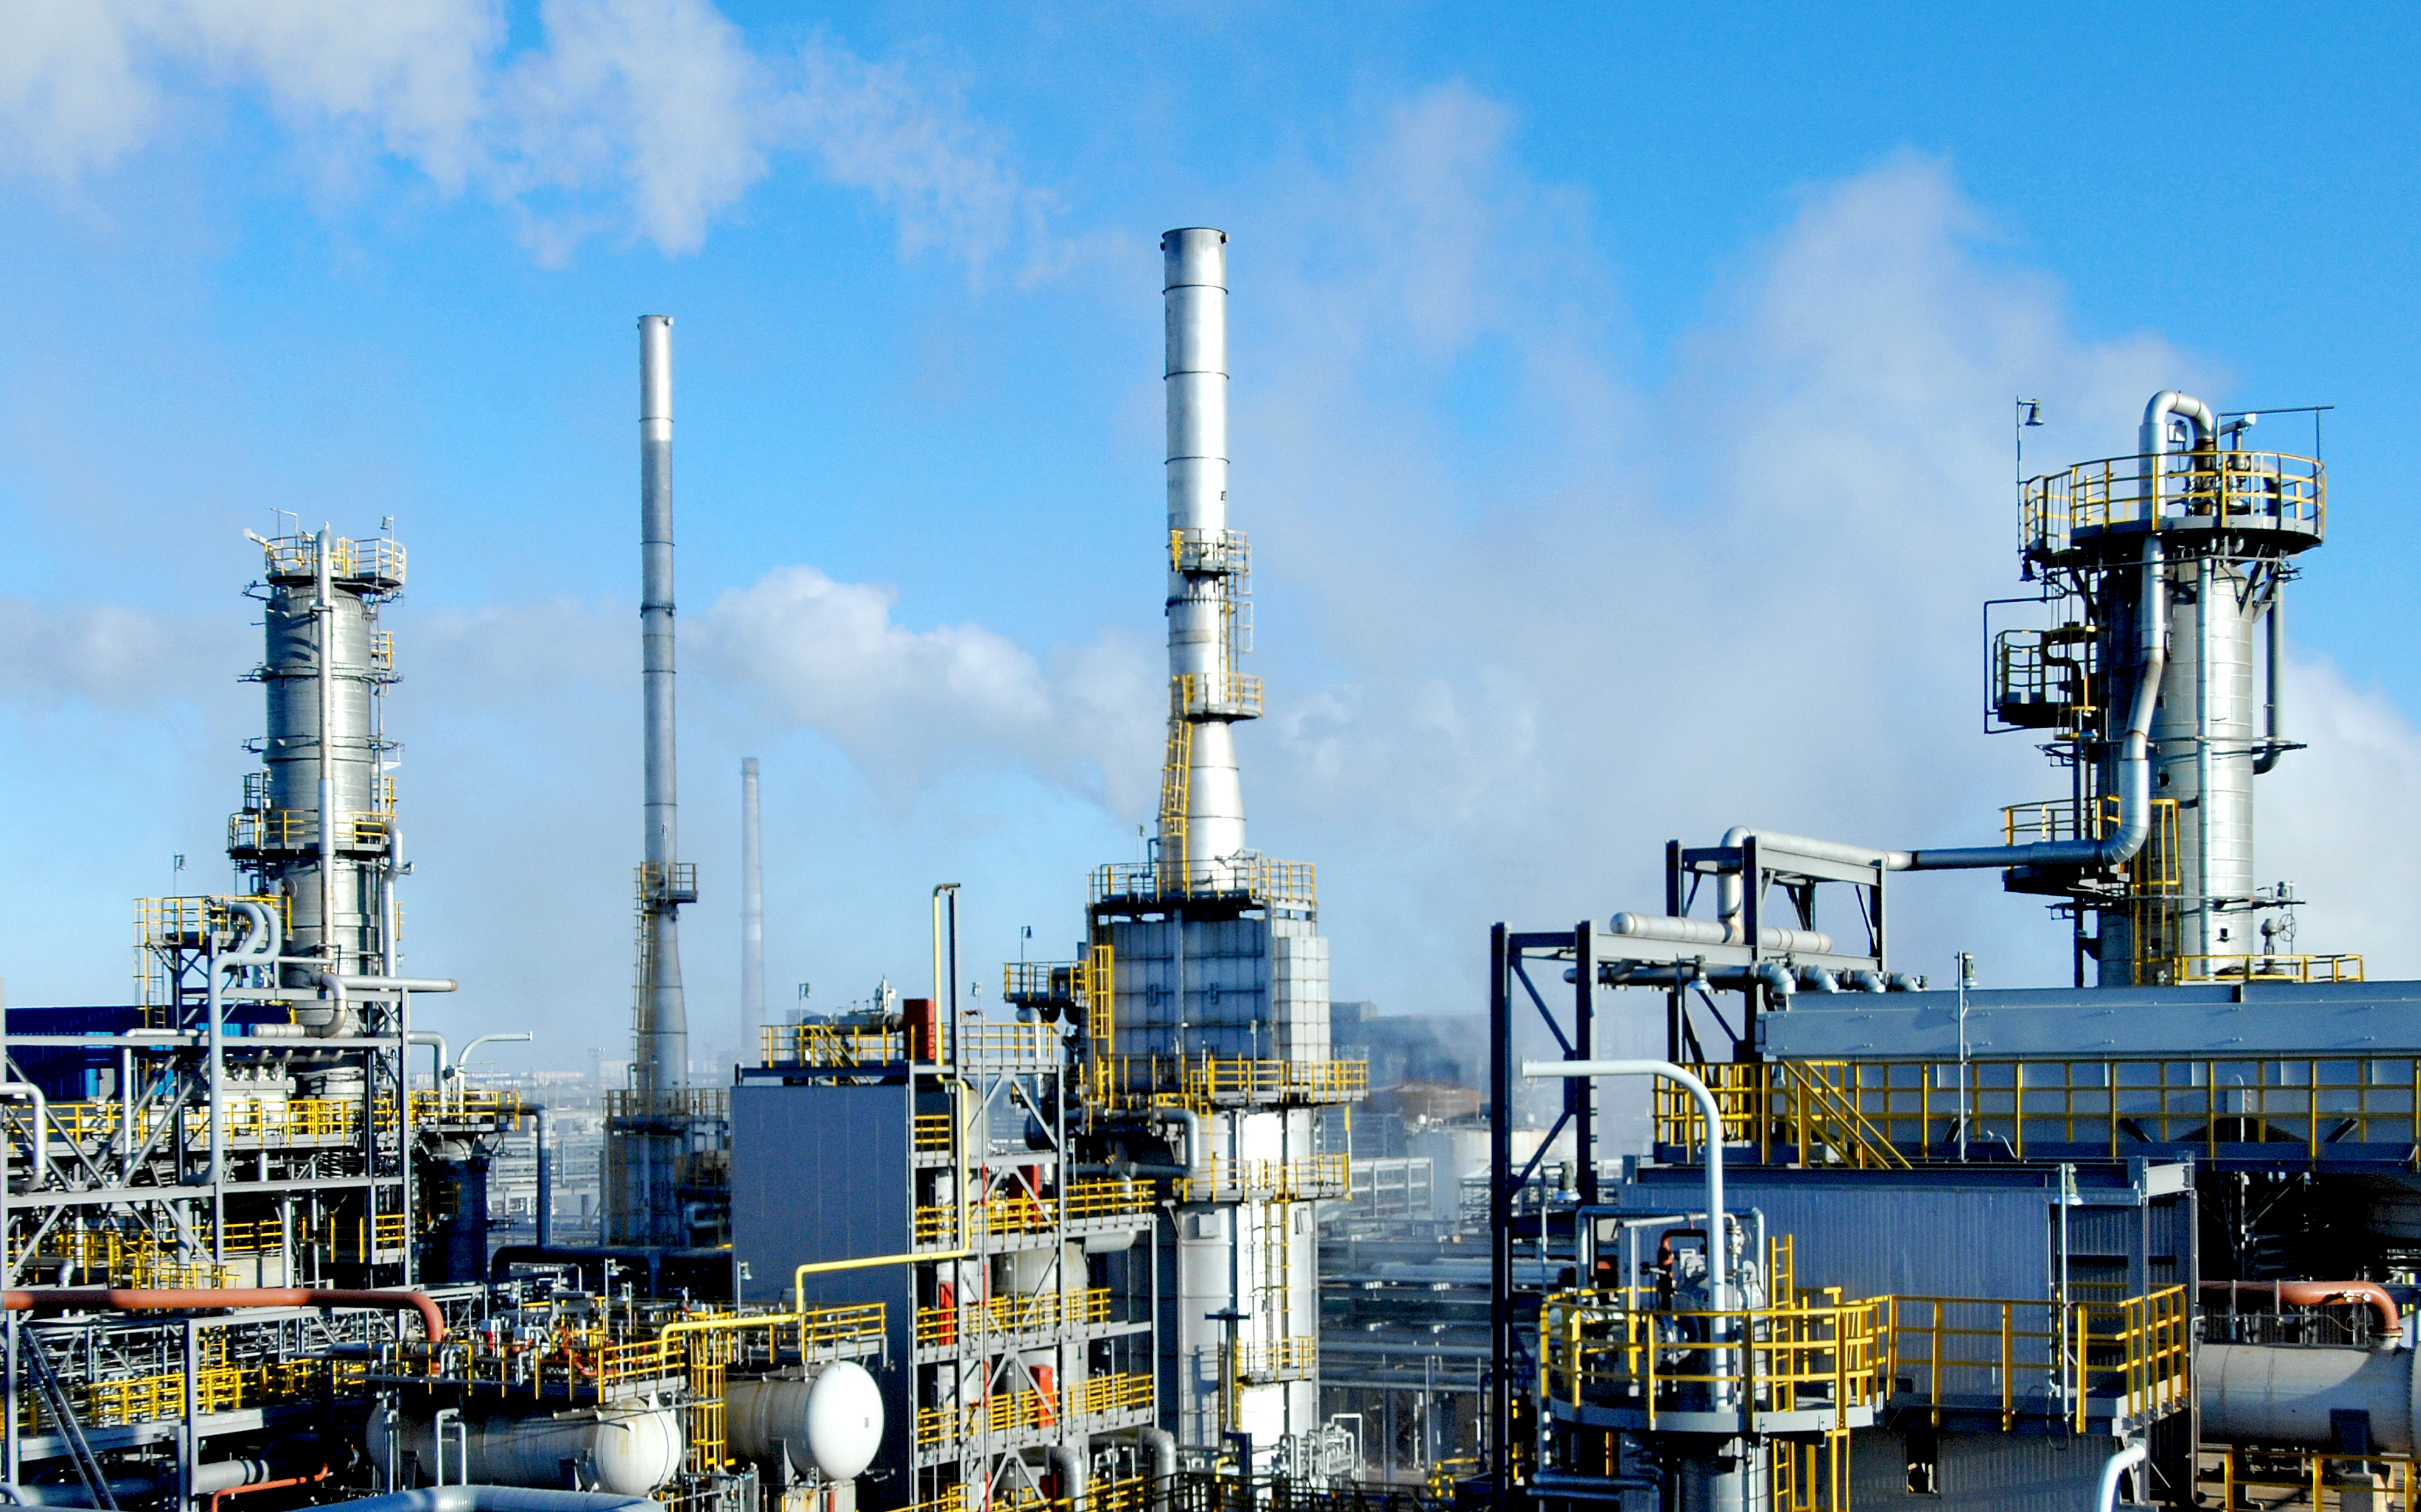 SHARAFCO OIL REFINERY & IND CO. LLC